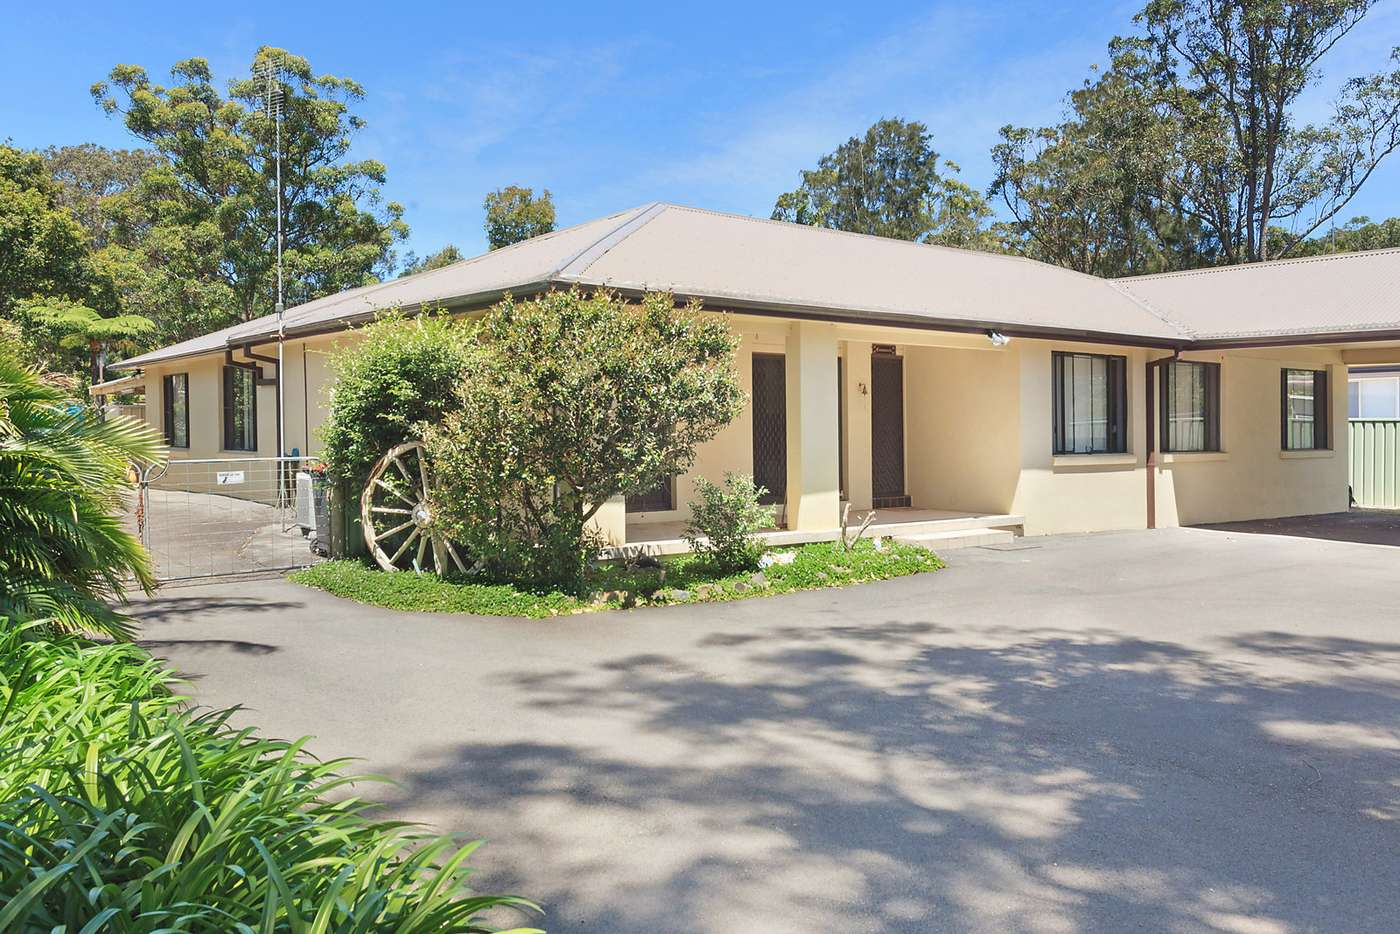 Fifth view of Homely house listing, 435 Wards Hill Road, Empire Bay NSW 2257